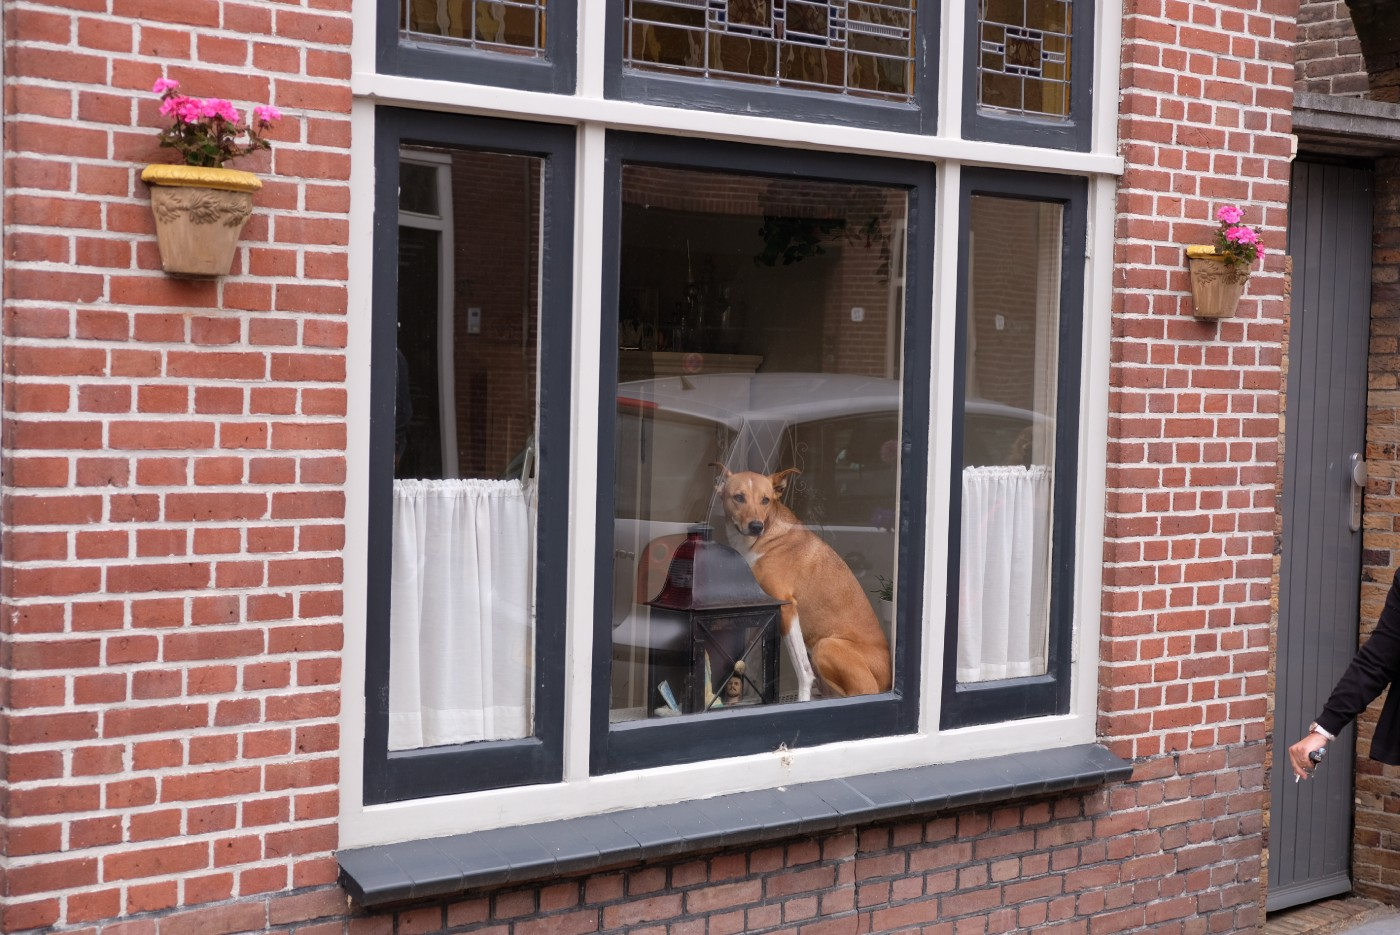 A dog sitting in a large window in a red-brick house, as seen from outside.